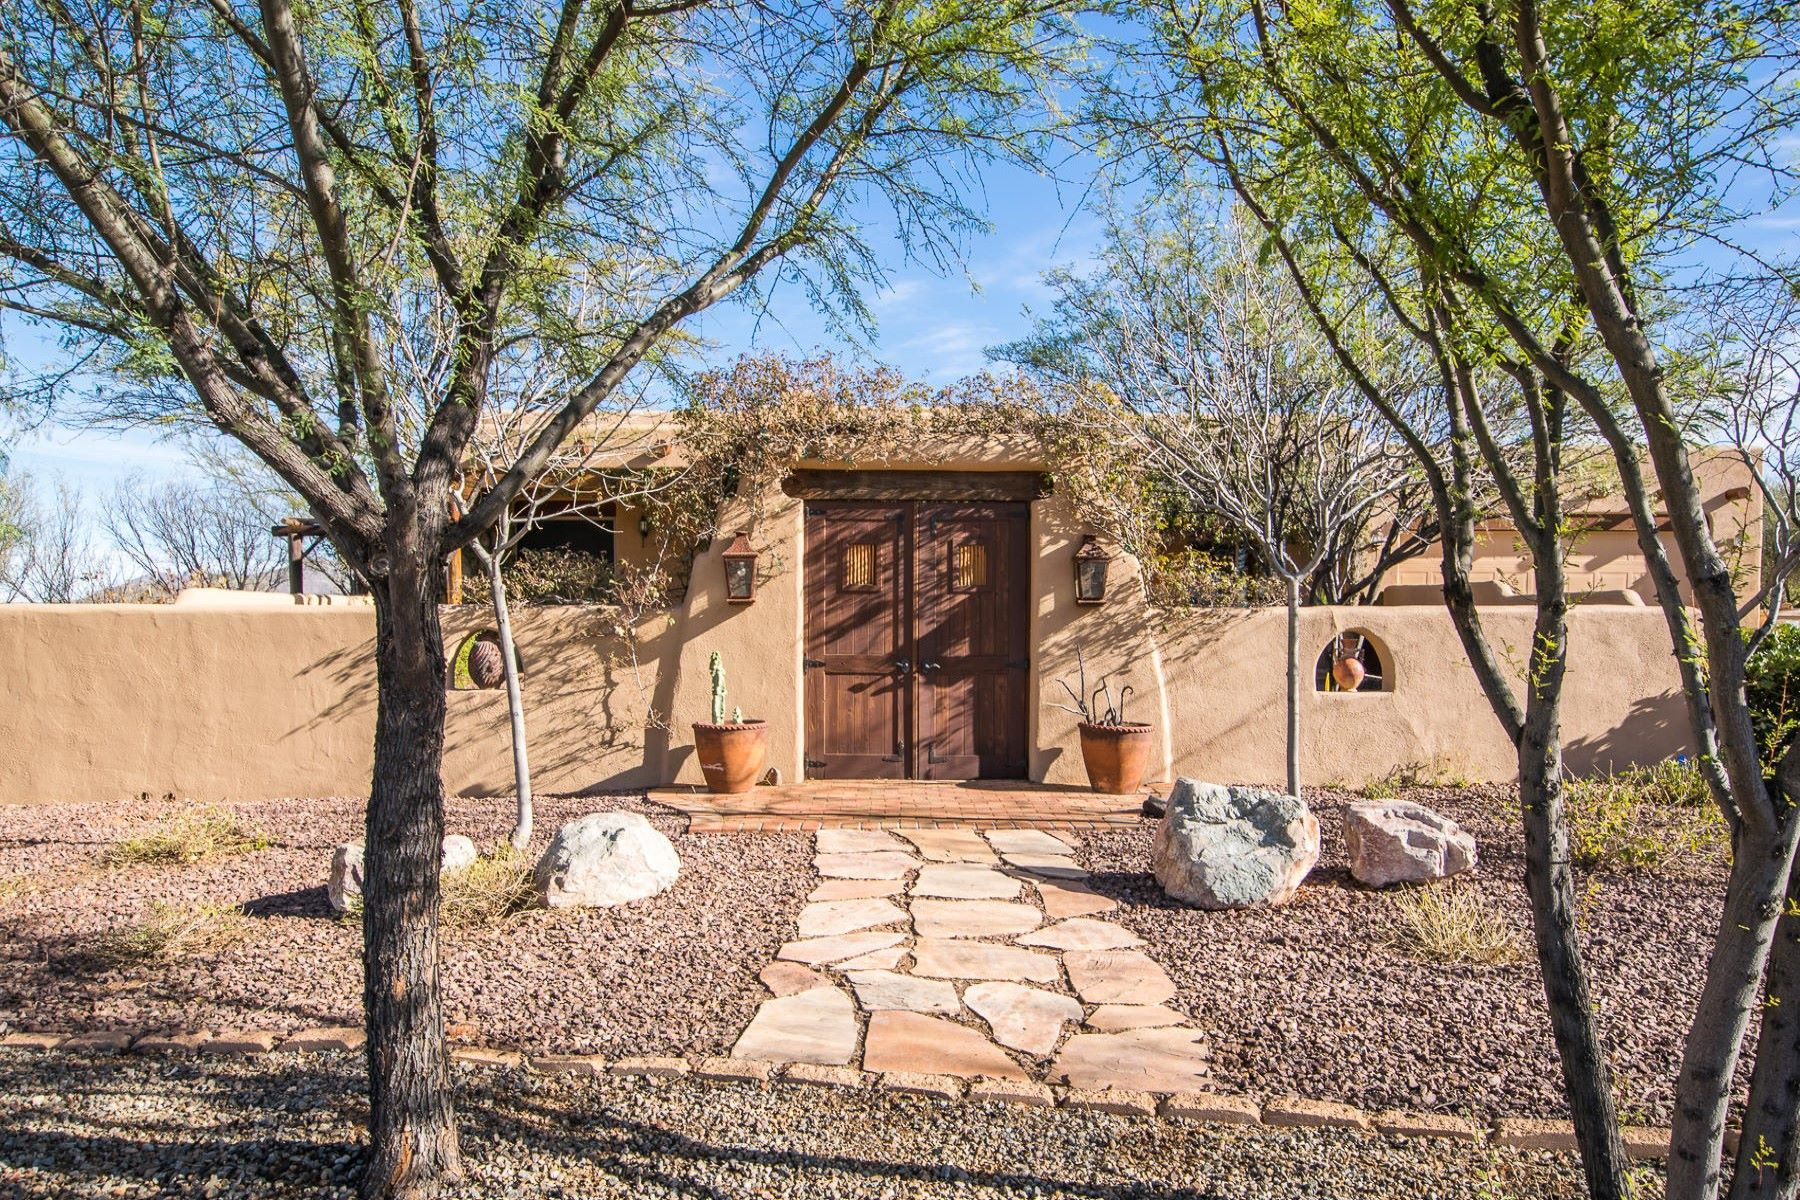 Single Family Home for Sale at Beautifully unique property with unobstructed views 19 Camino Nacozari Tubac, Arizona, 85646 United States